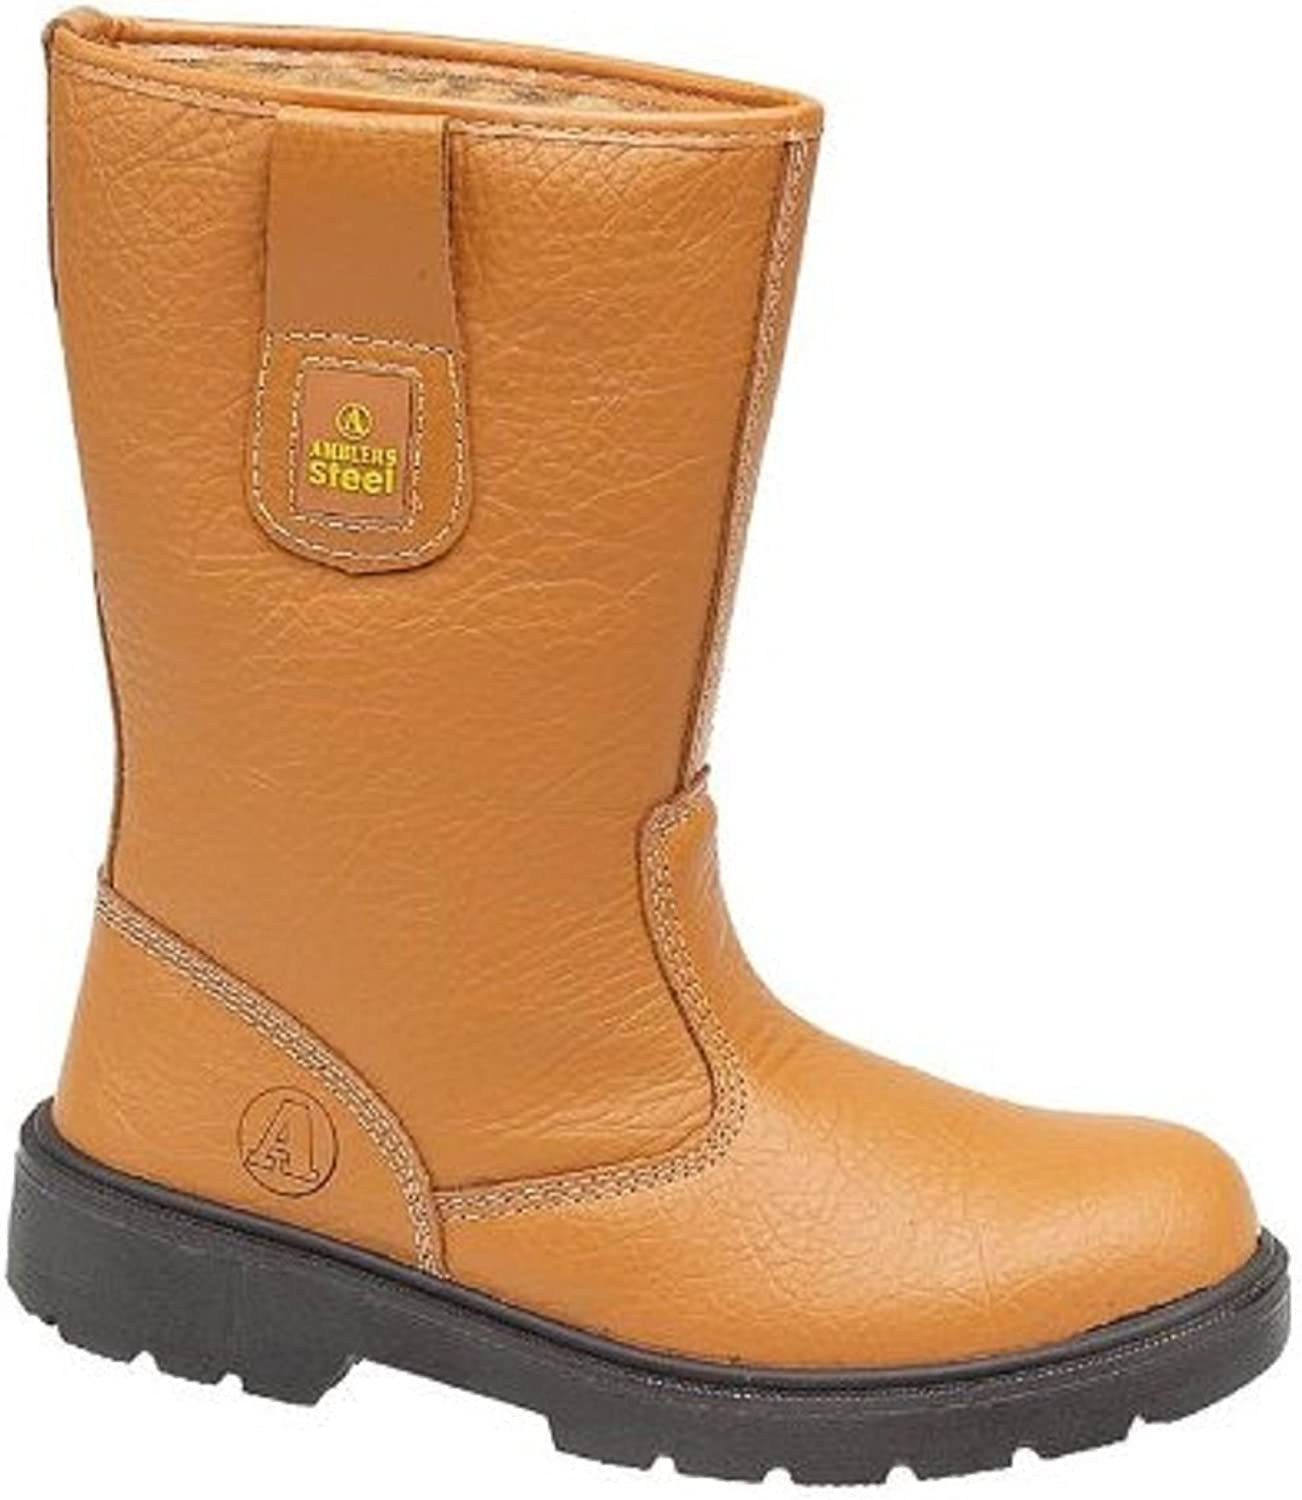 Mens Amblers Steel FS124 Lined Safety Rigger Boots